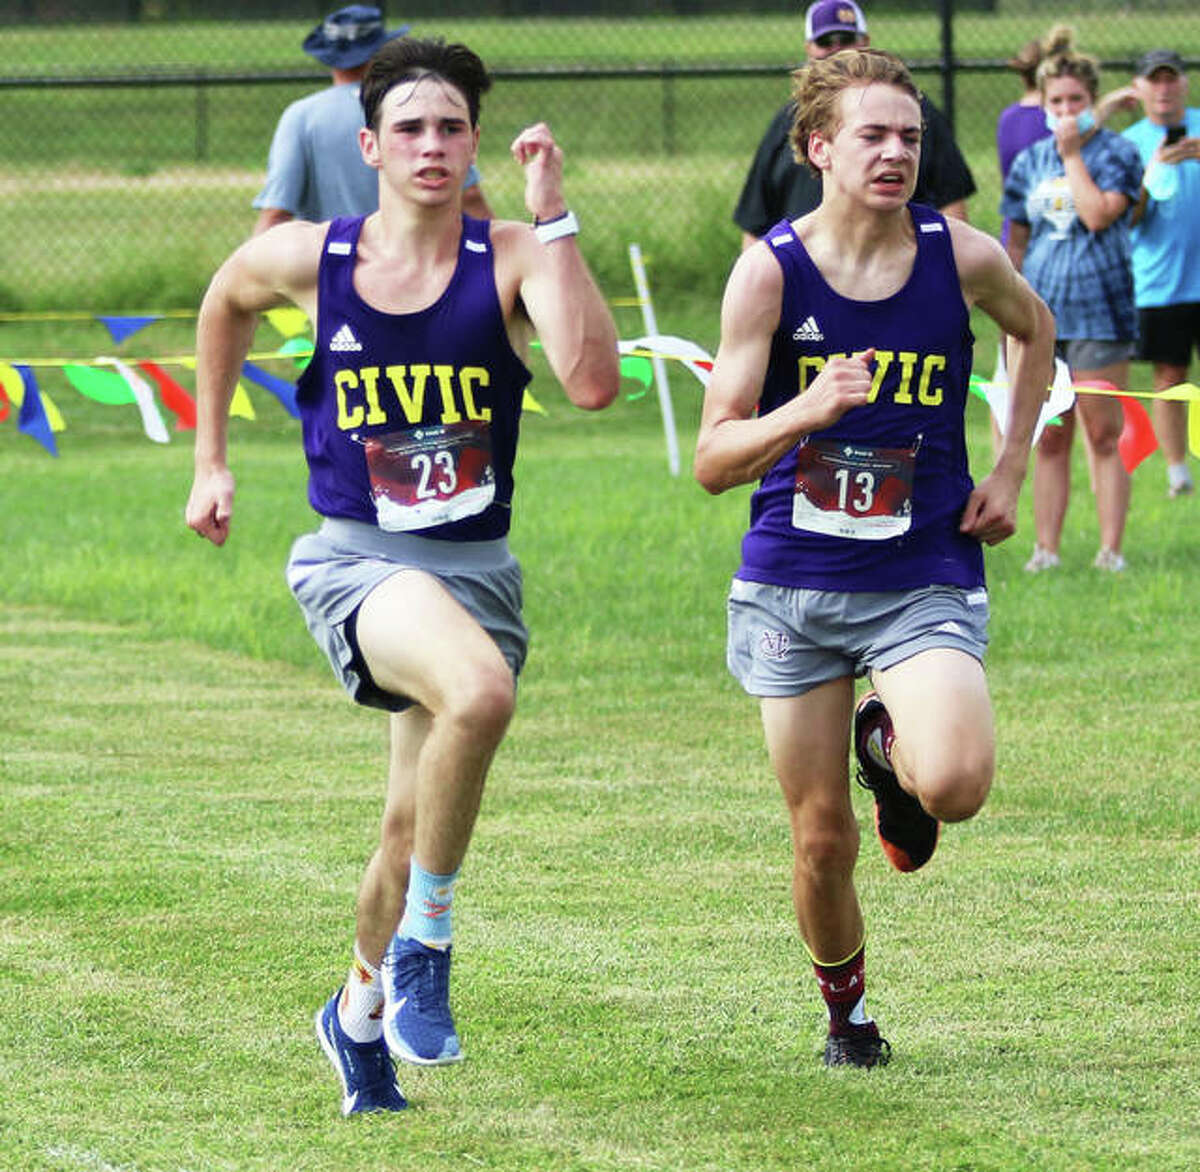 CM's Evan Zobrist (left) and Jackson Collman sprint to the finish line in an Aug. 26 race at the Bethalto Sports Complex. Zobrist placed fourth in the dual meet with Roxana in 18:35, with Collman fifth in 18:36.